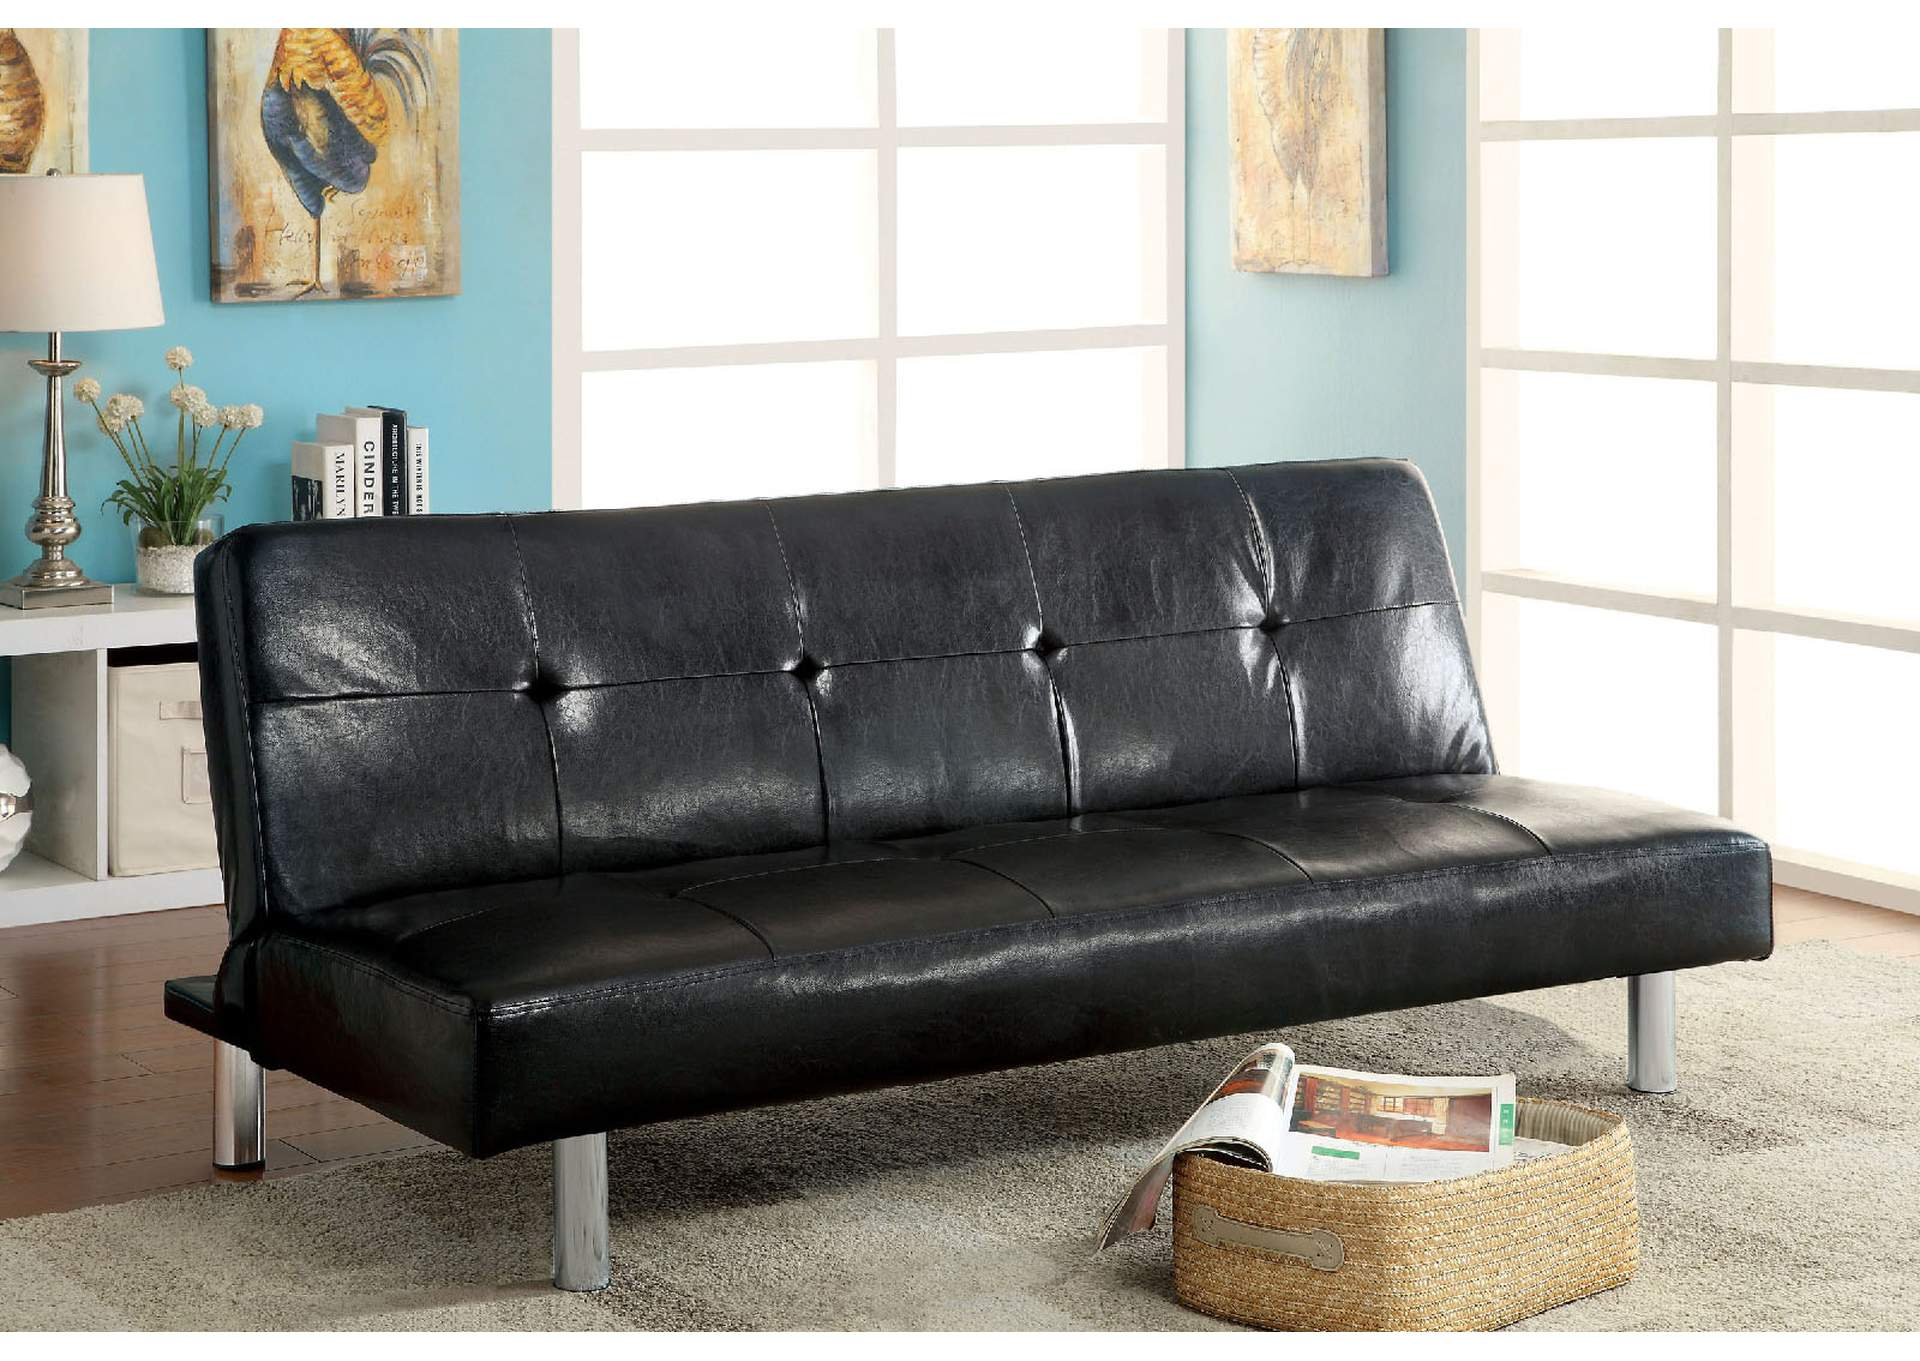 Eddi Black Leatherette Futon Sofa,Furniture of America TX